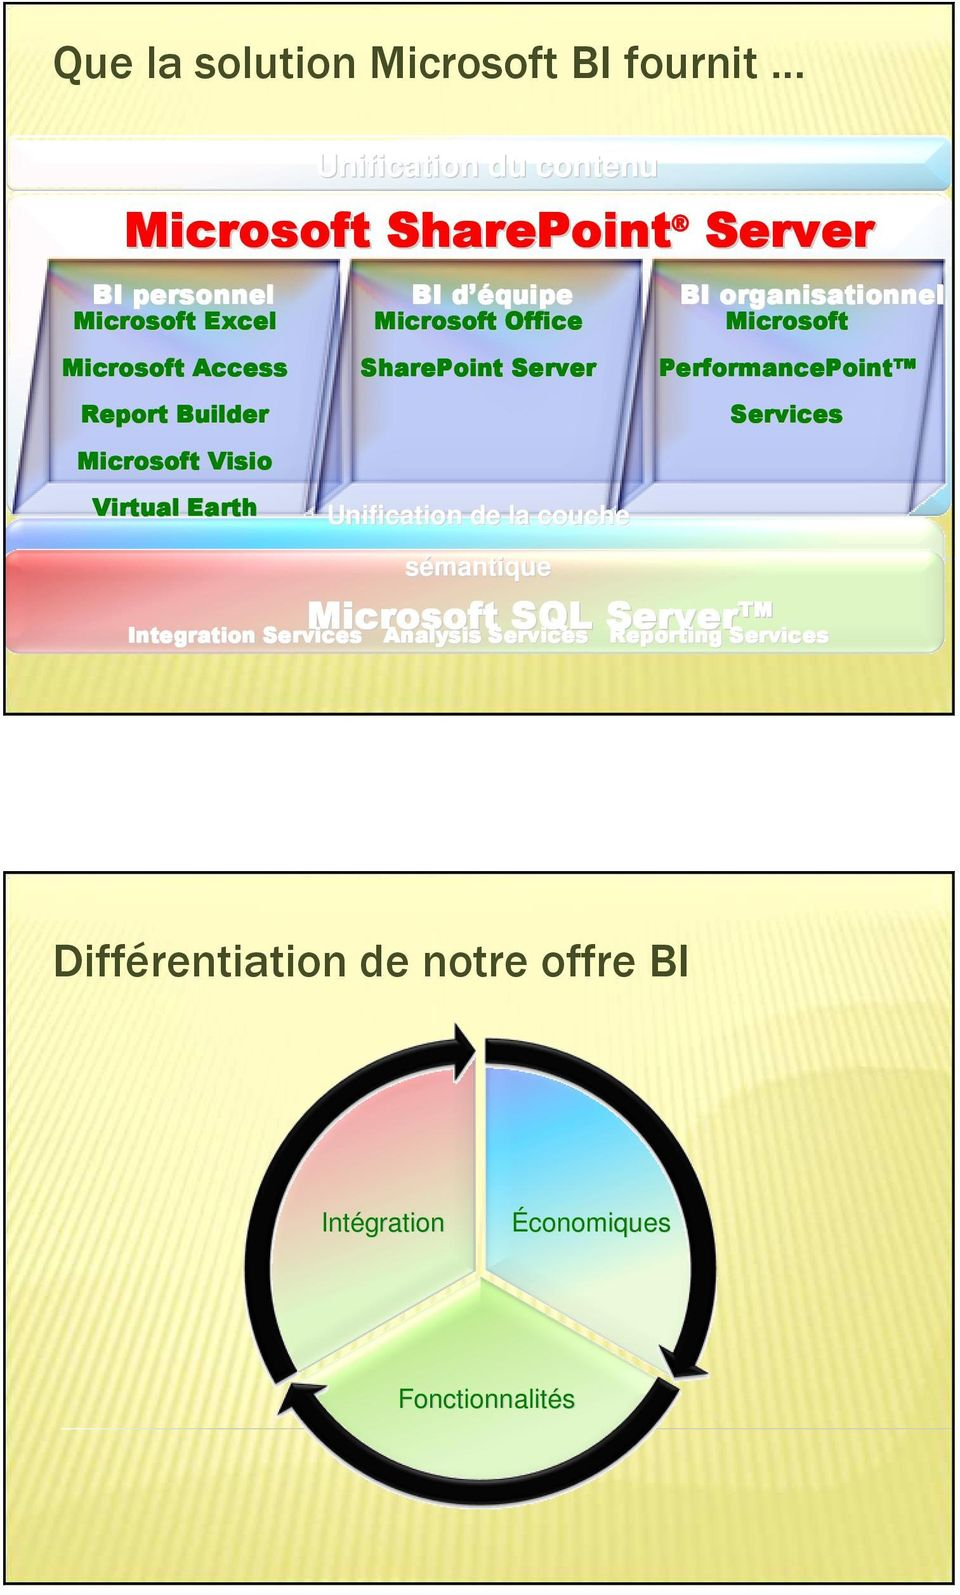 Unification de la couche sémantique Microsoft SQL Server BI organisationnel Microsoft PerformancePoint Services